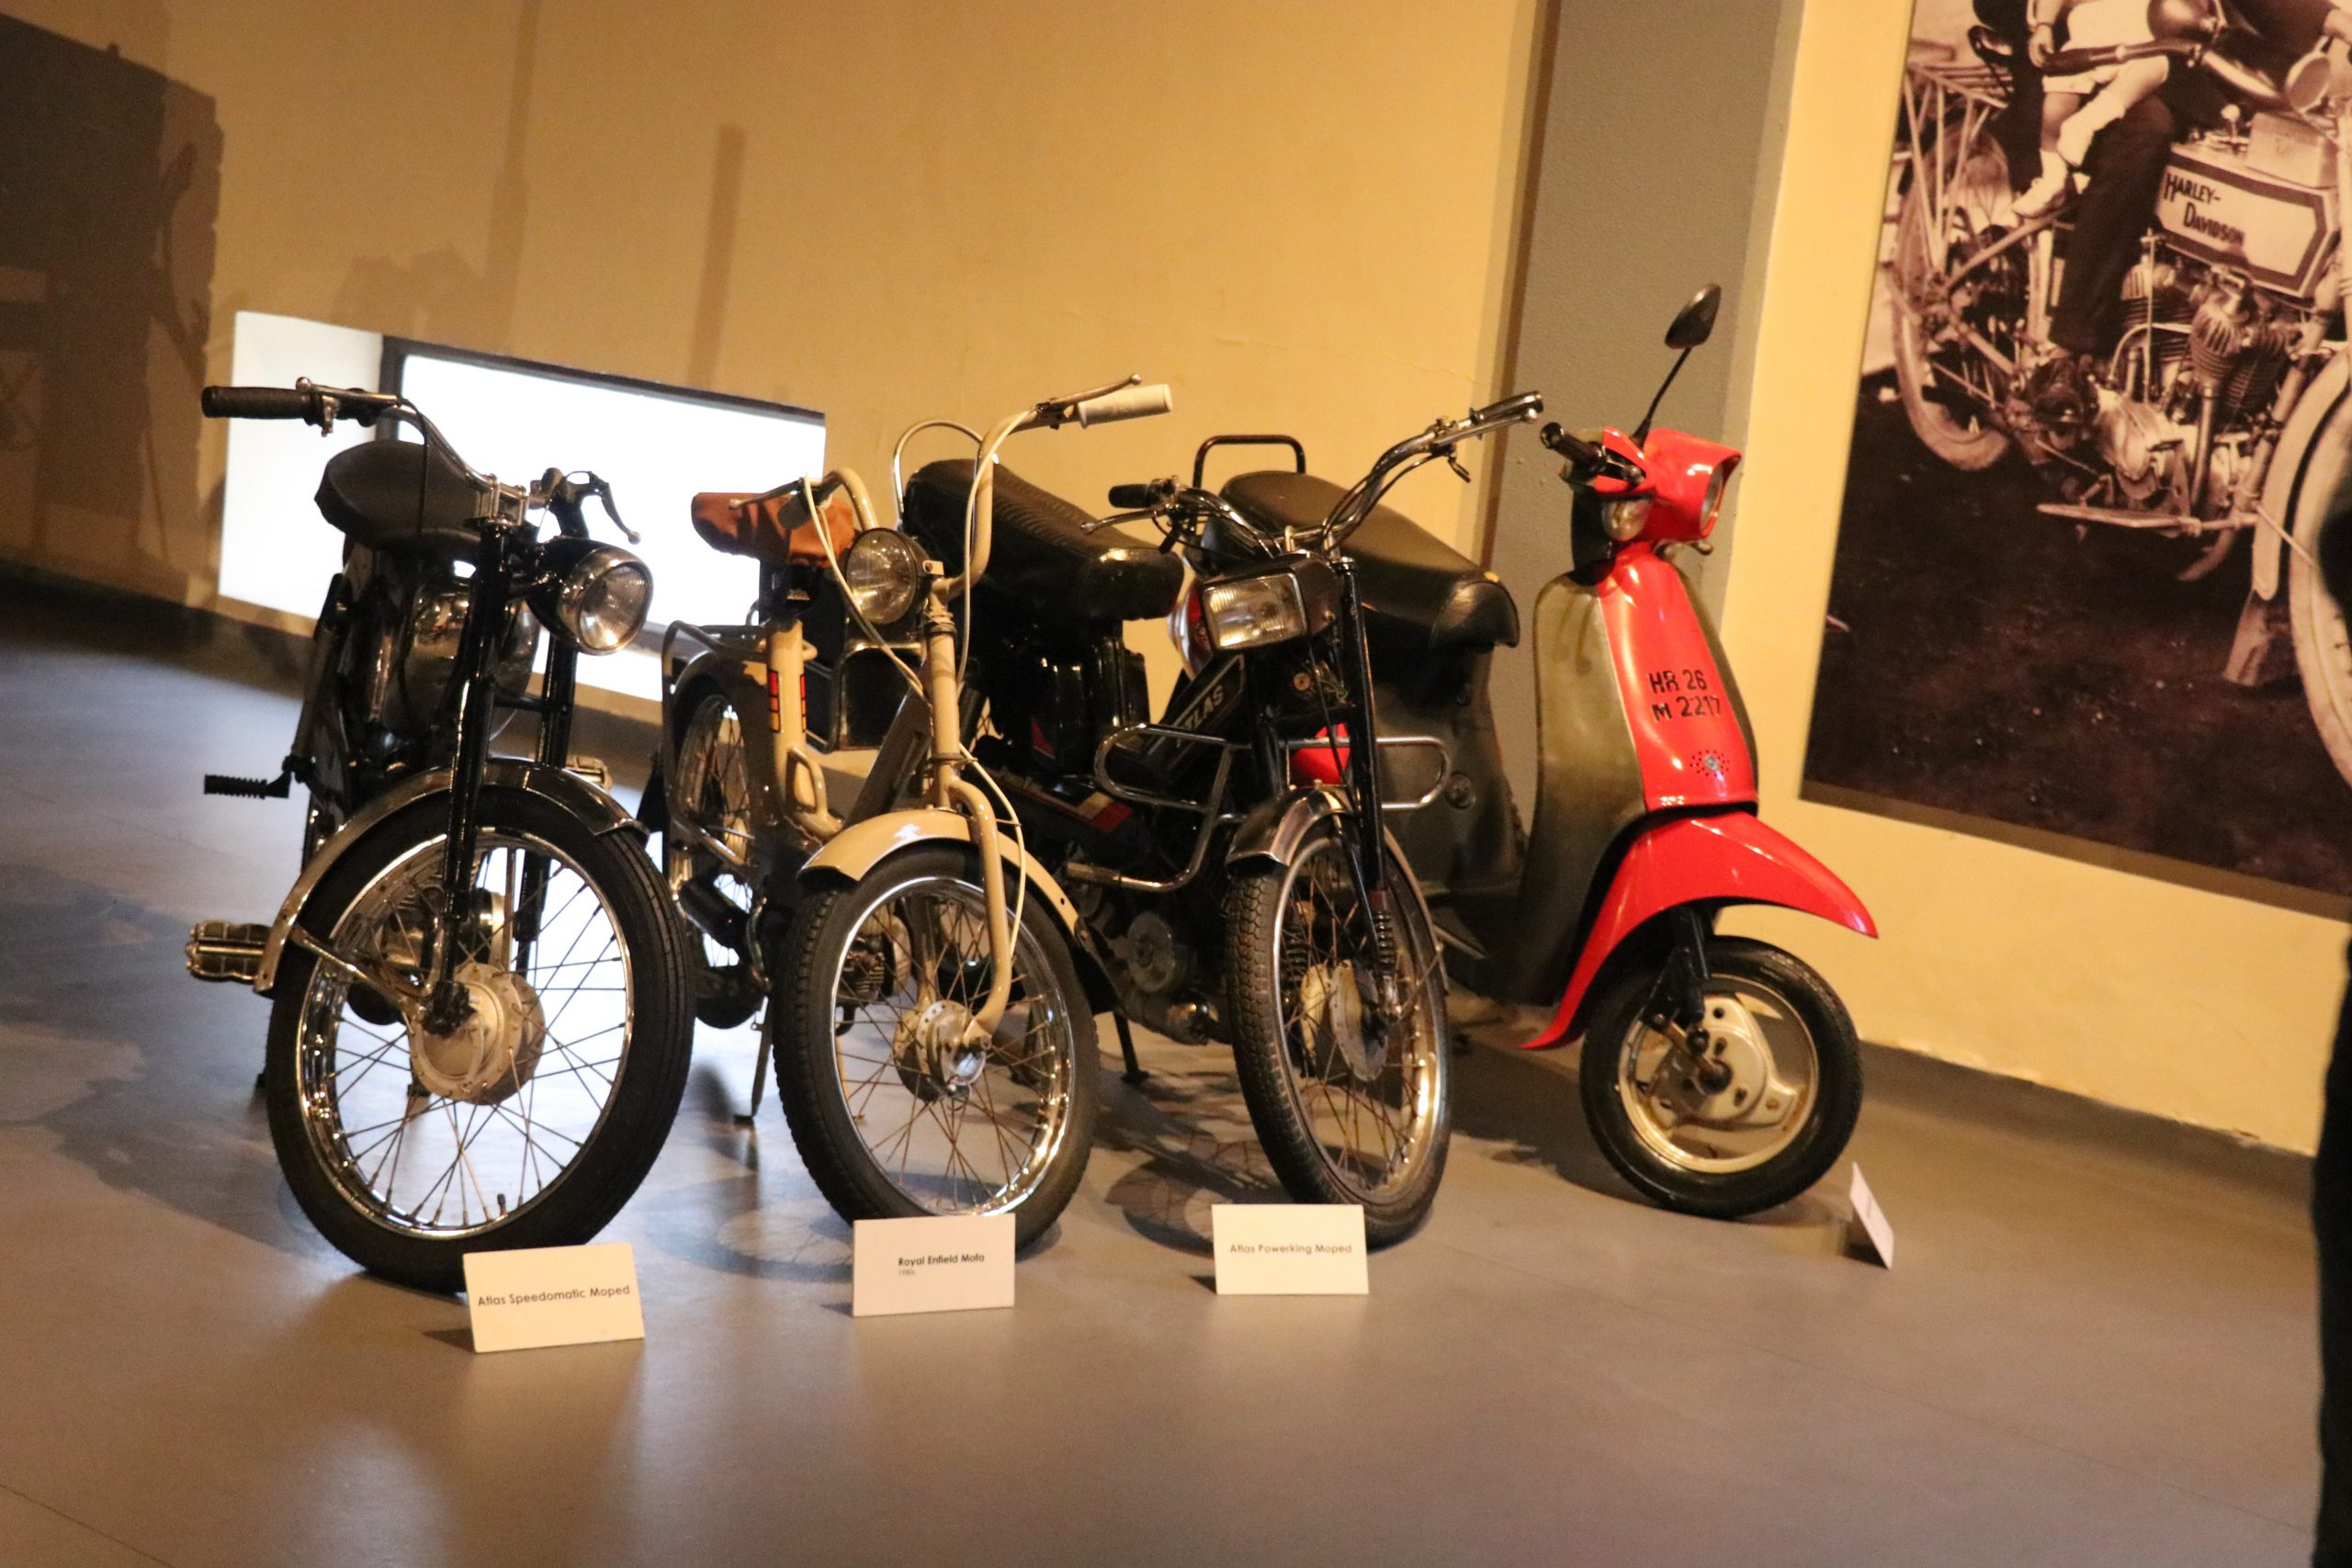 Vintage bikes in the museum